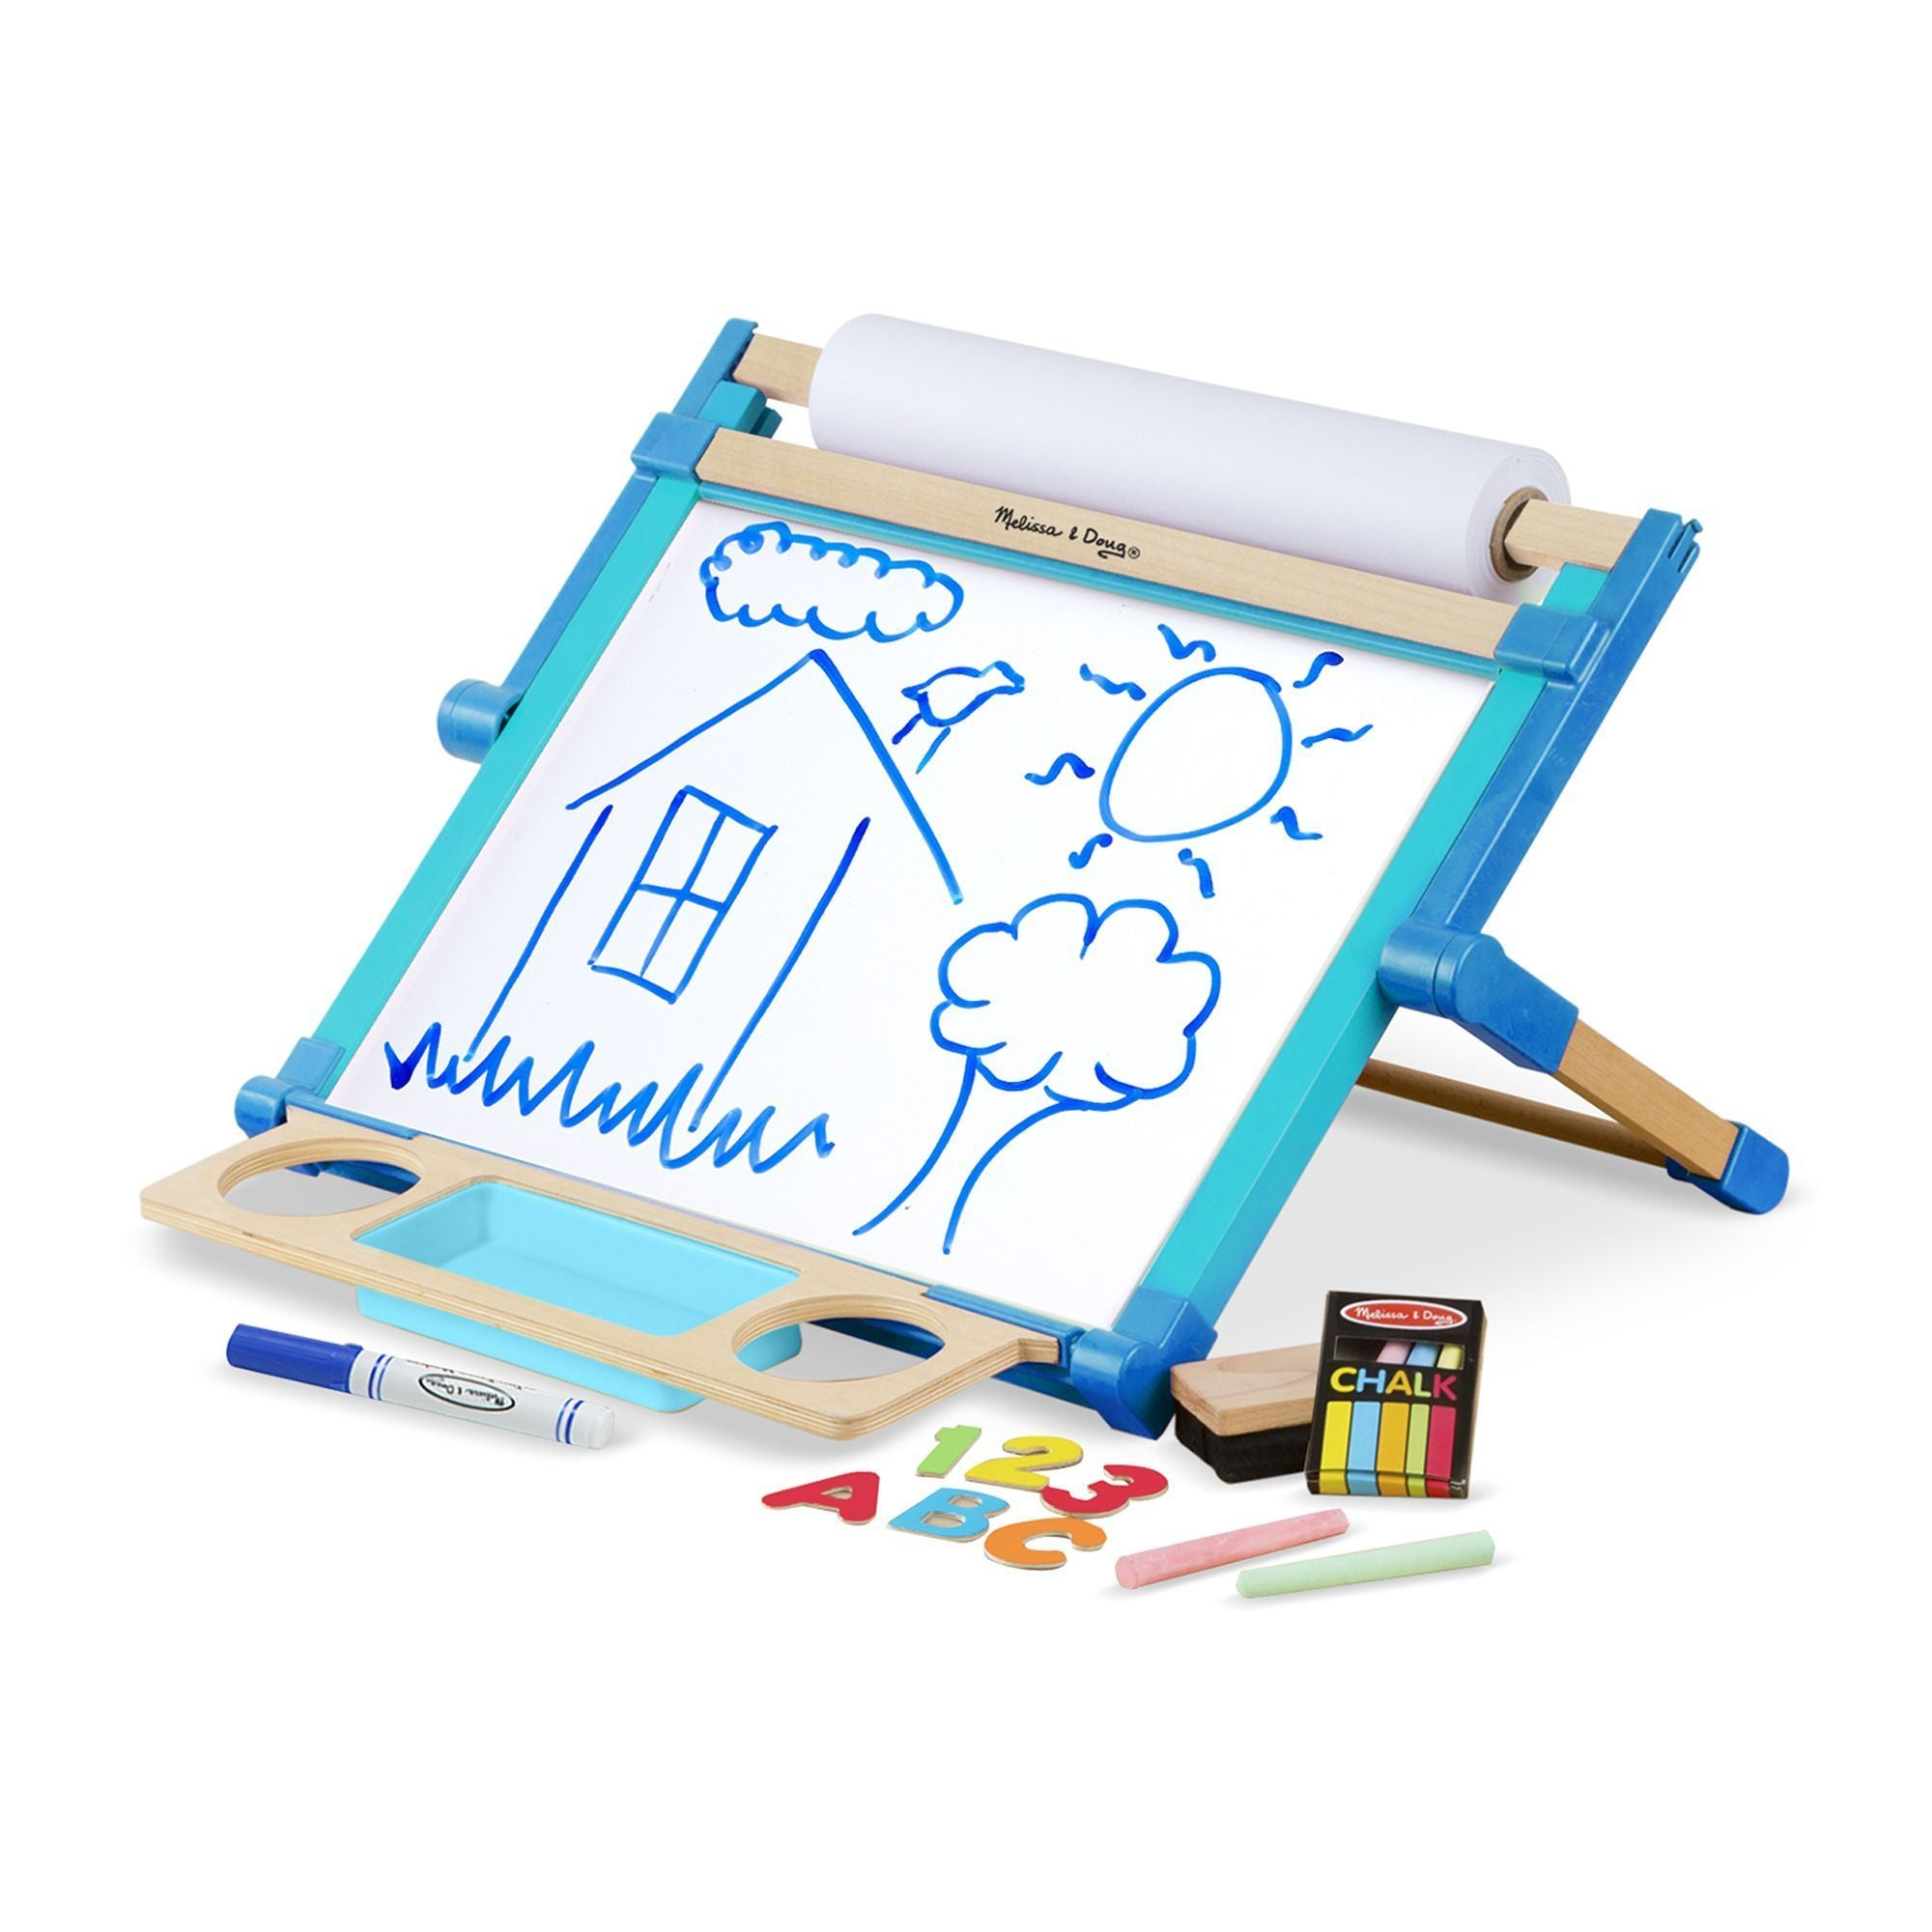 Double-Sided Magnetic Tabletop Easel